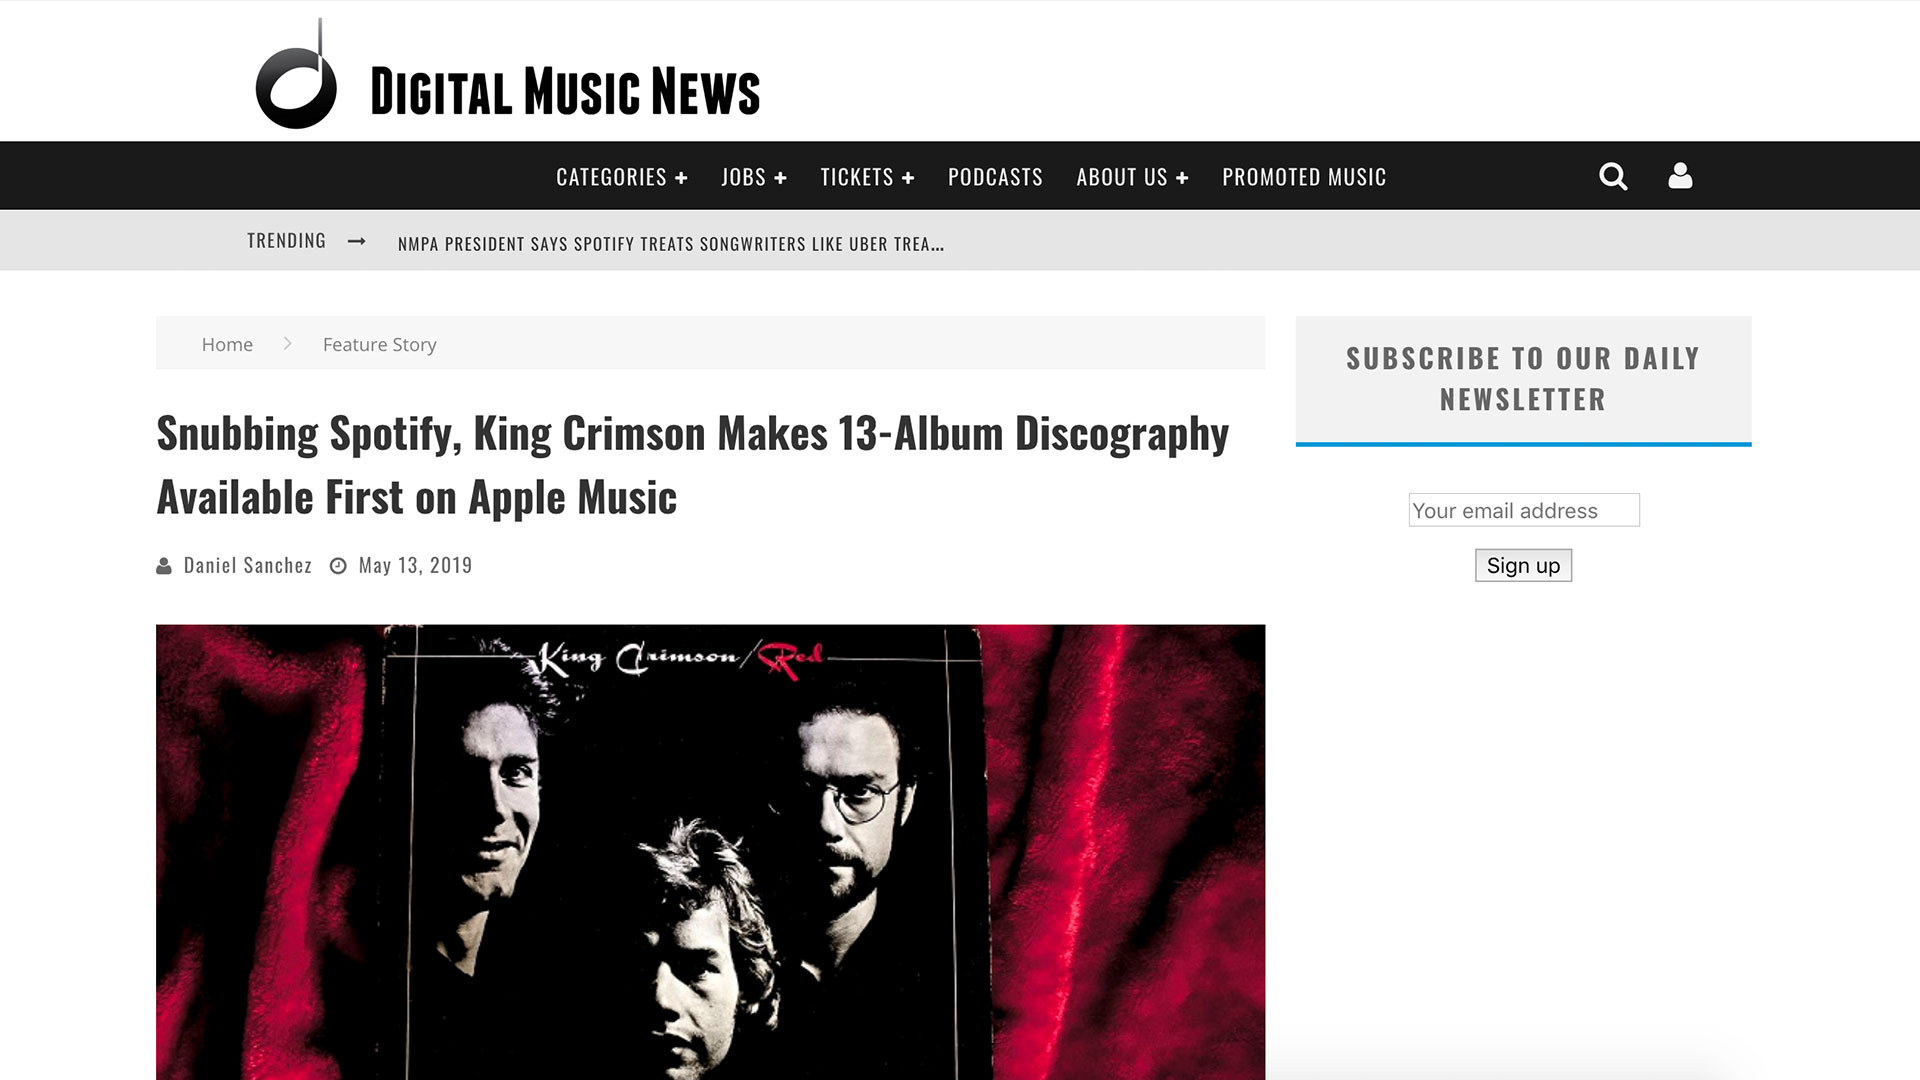 Fairness Rocks News Snubbing Spotify, King Crimson Makes 13-Album Discography Available First on Apple Music